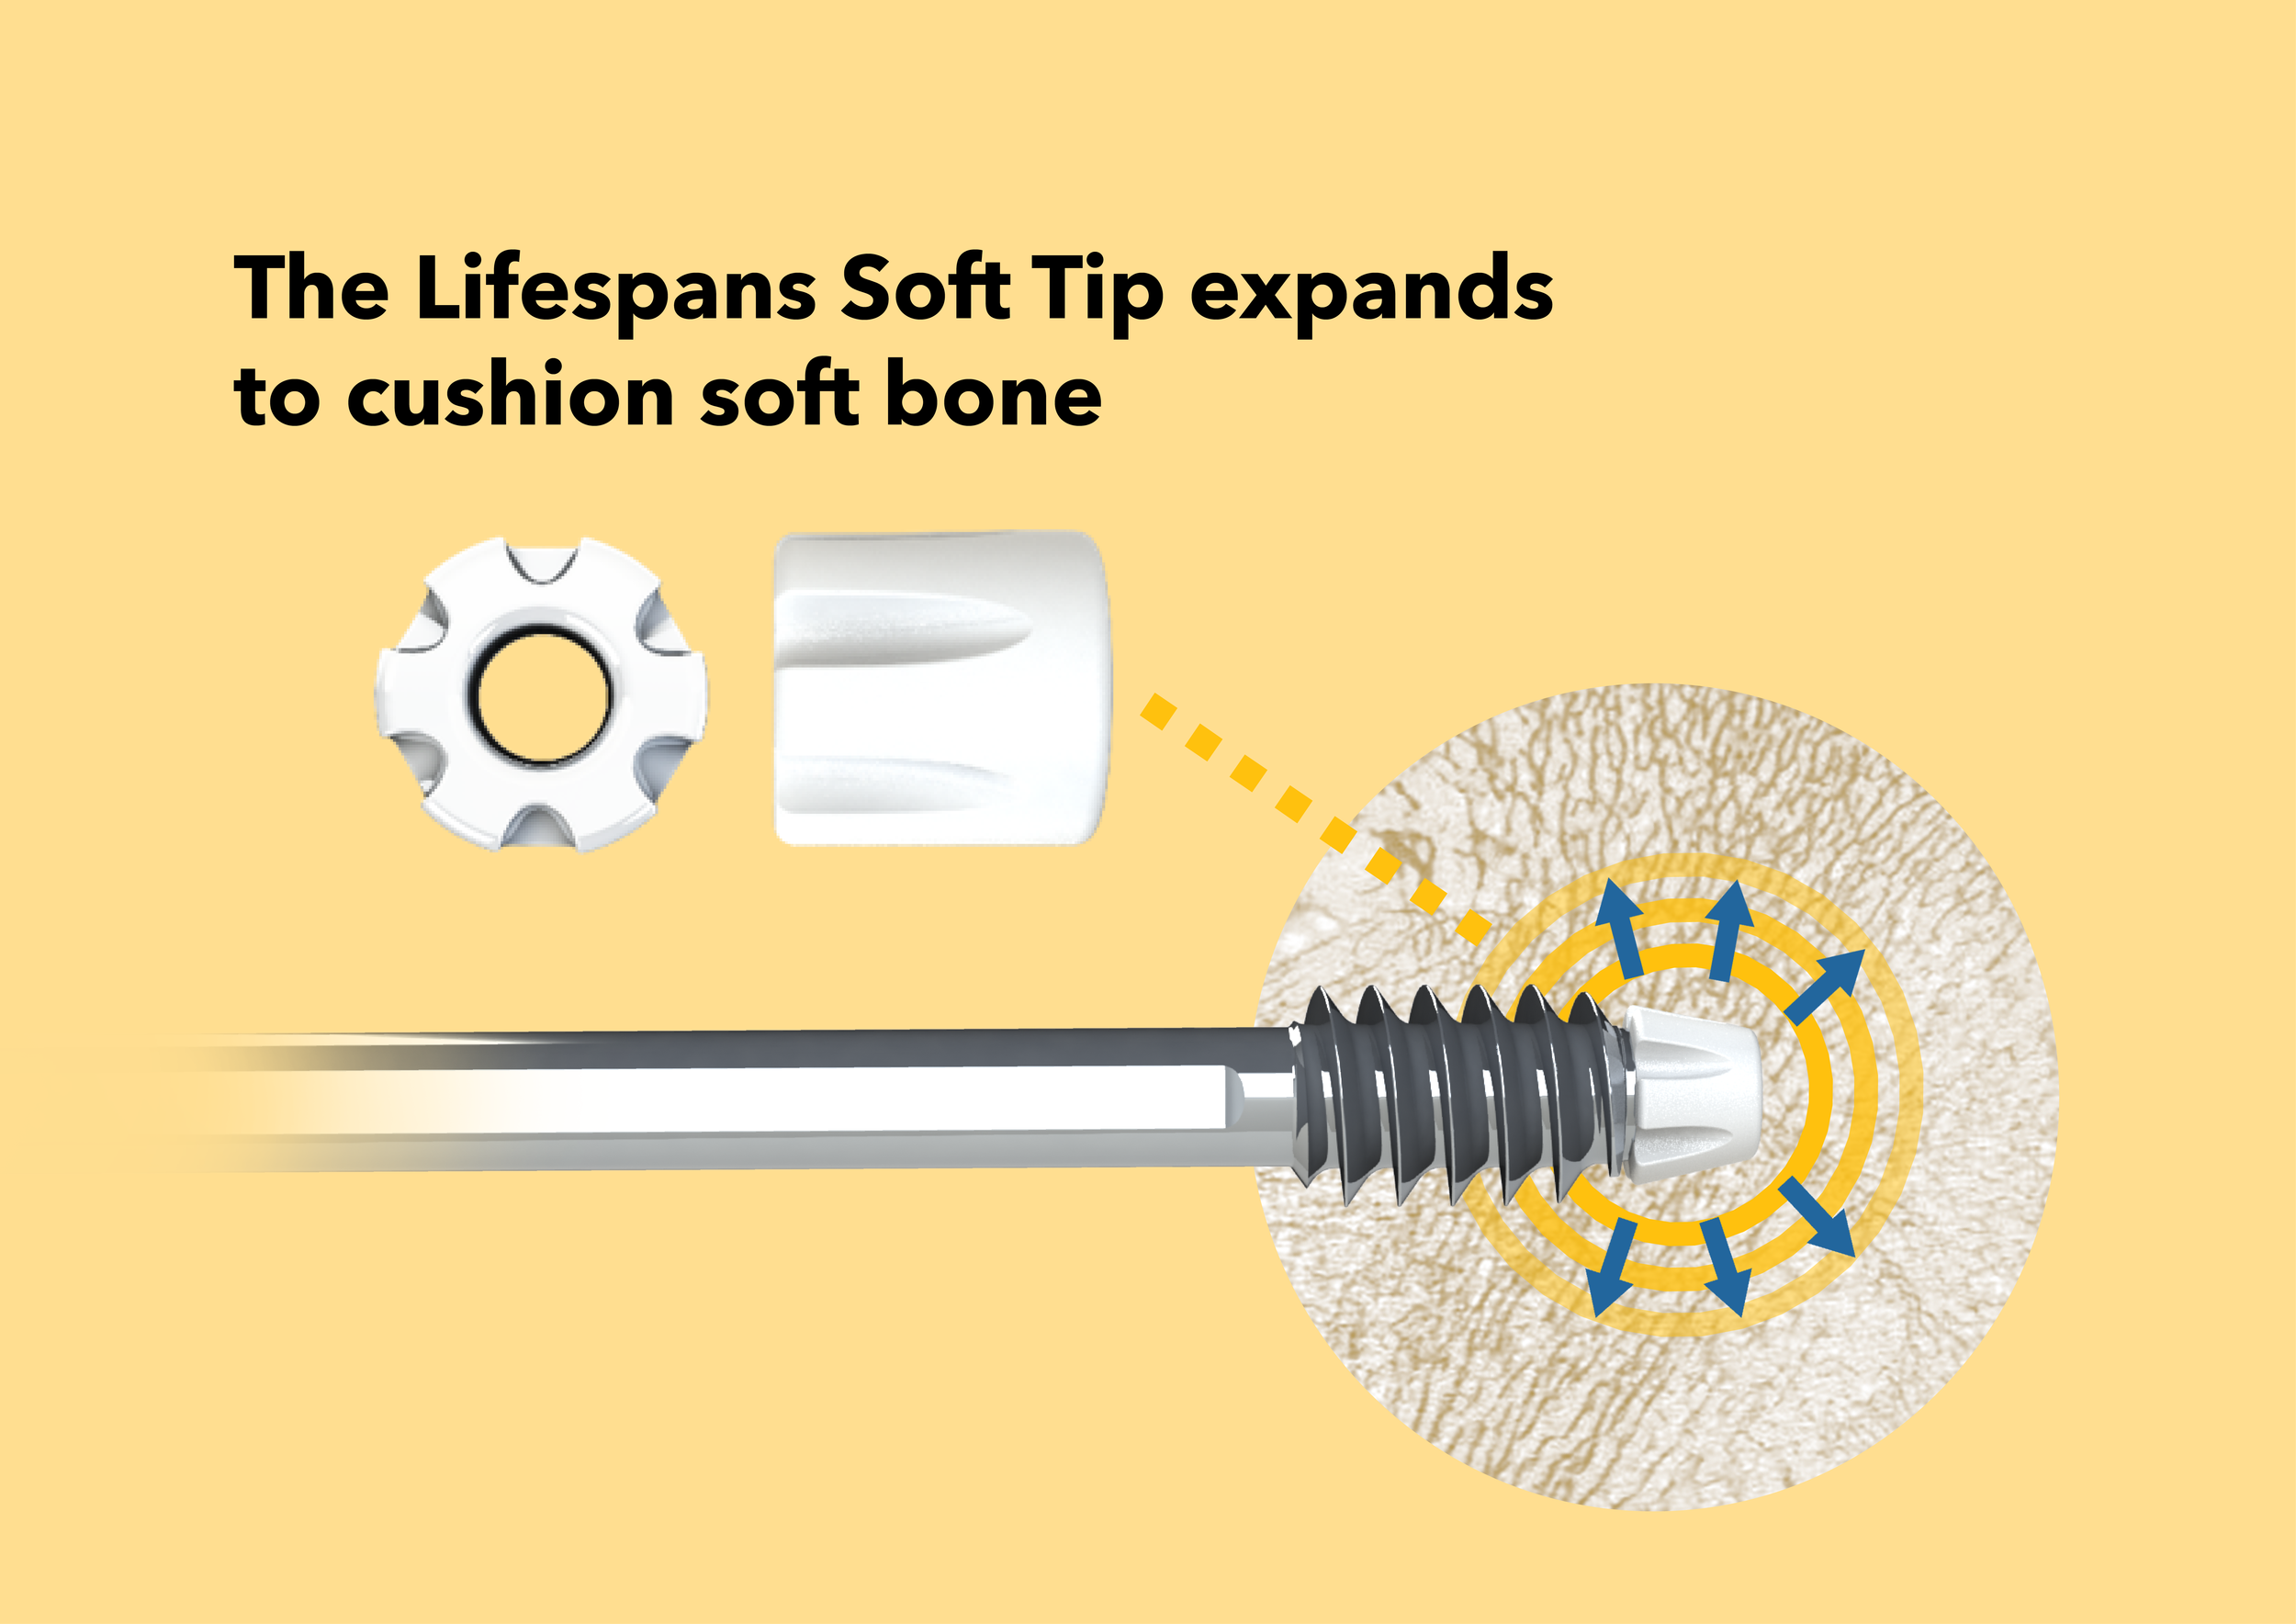 Lifespans Soft Tip* - A biocompatible polymer cushion for implant tips that reduces stress on soft bone tissue, resulting in up to 70% less migration vs. conventional screws from torque / oblique loading.** Based on the Fang-Kulper Tip.Used in the Lifespans Soft Hip* ImplantPatent-pending USA, EU, China, PCT